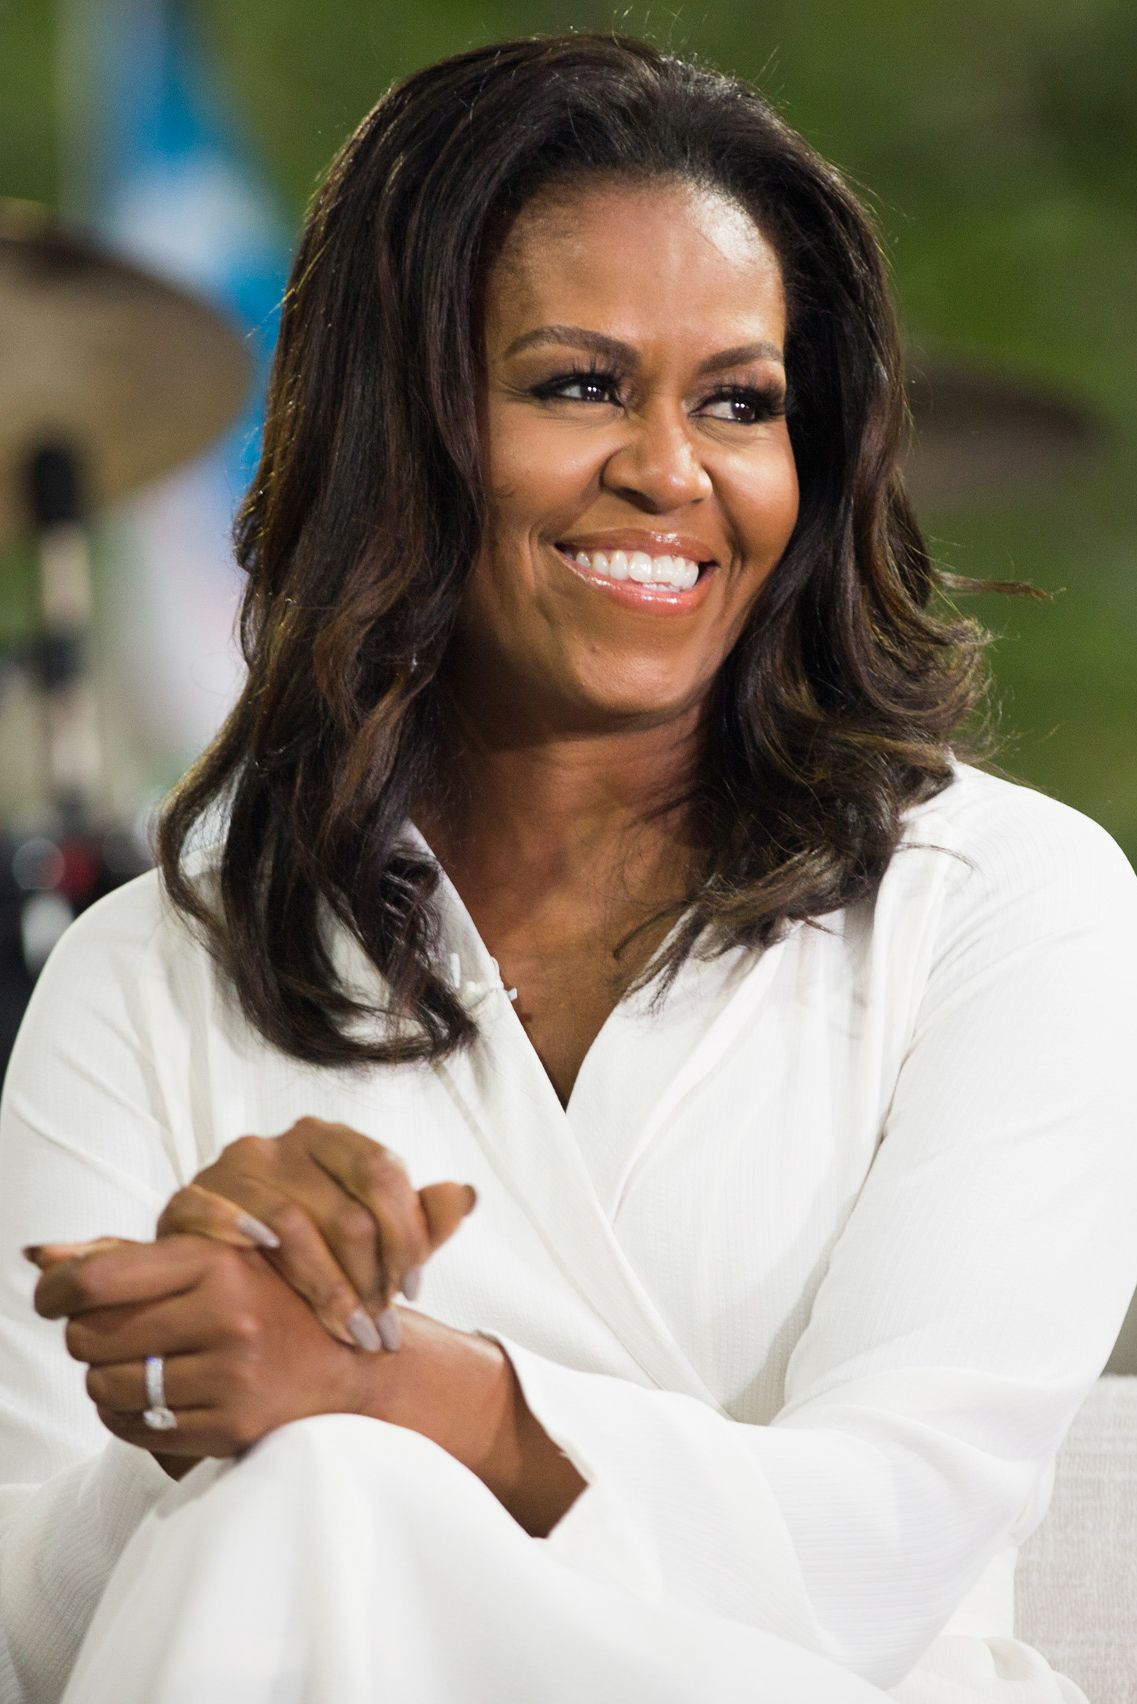 Now Hes Hiding Behind First Lady >> Michelle Obama S Becoming Memoir Read An Exclusive Excerpt